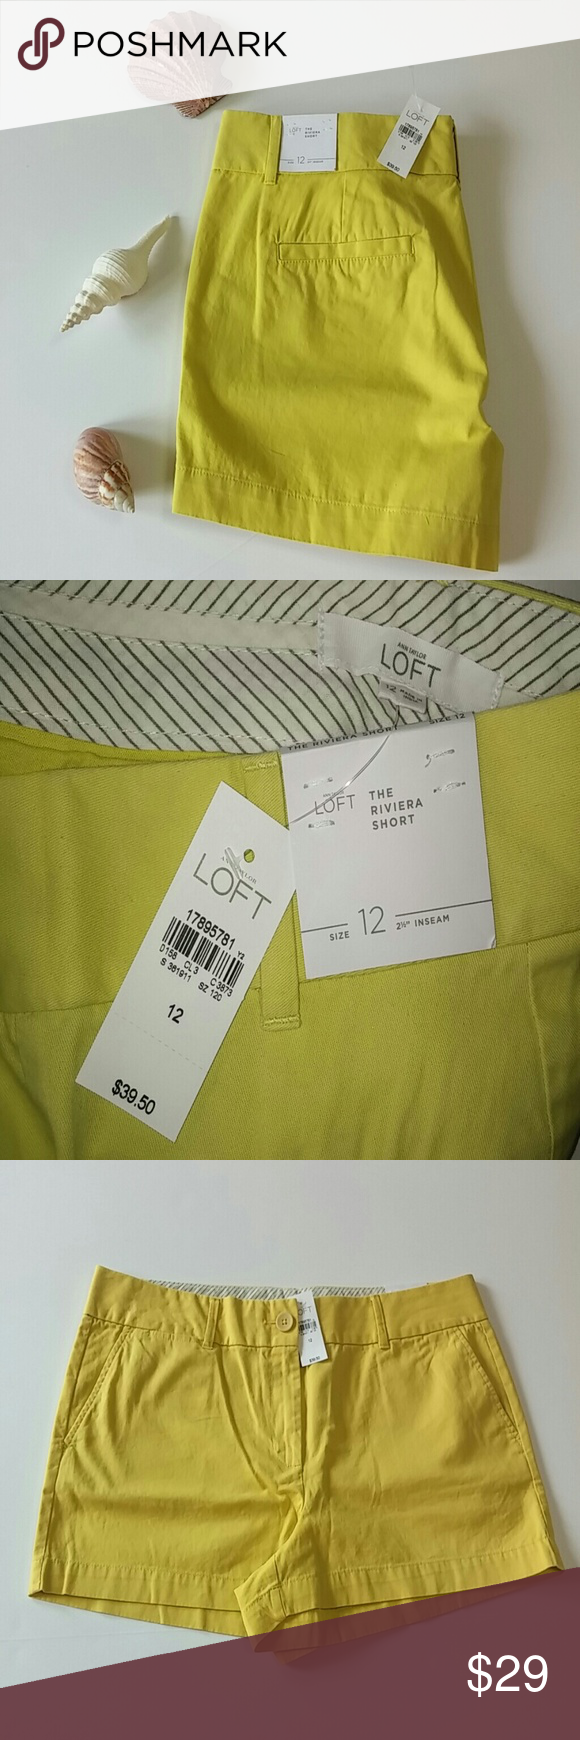 """NWT LOFT Ann Taylor Riviera Shorts Sz 12 Yellow New with Tags. LOFT Ann Taylor Riviera Shorts. Size 12. Color: Yellow. Flat Front. Two Front On Seam Pockets. Two Back Slit Pockets. Belt Loops. 100% Cotton. Machine Wash.  Measurements: 37"""" Waist - doubled 42"""" Hips - doubled 10-1/2"""" Rise 2-1/2"""" Inseam 14"""" Leg/Thigh Opening  Accessories and Props Not Included. LOFT Shorts"""